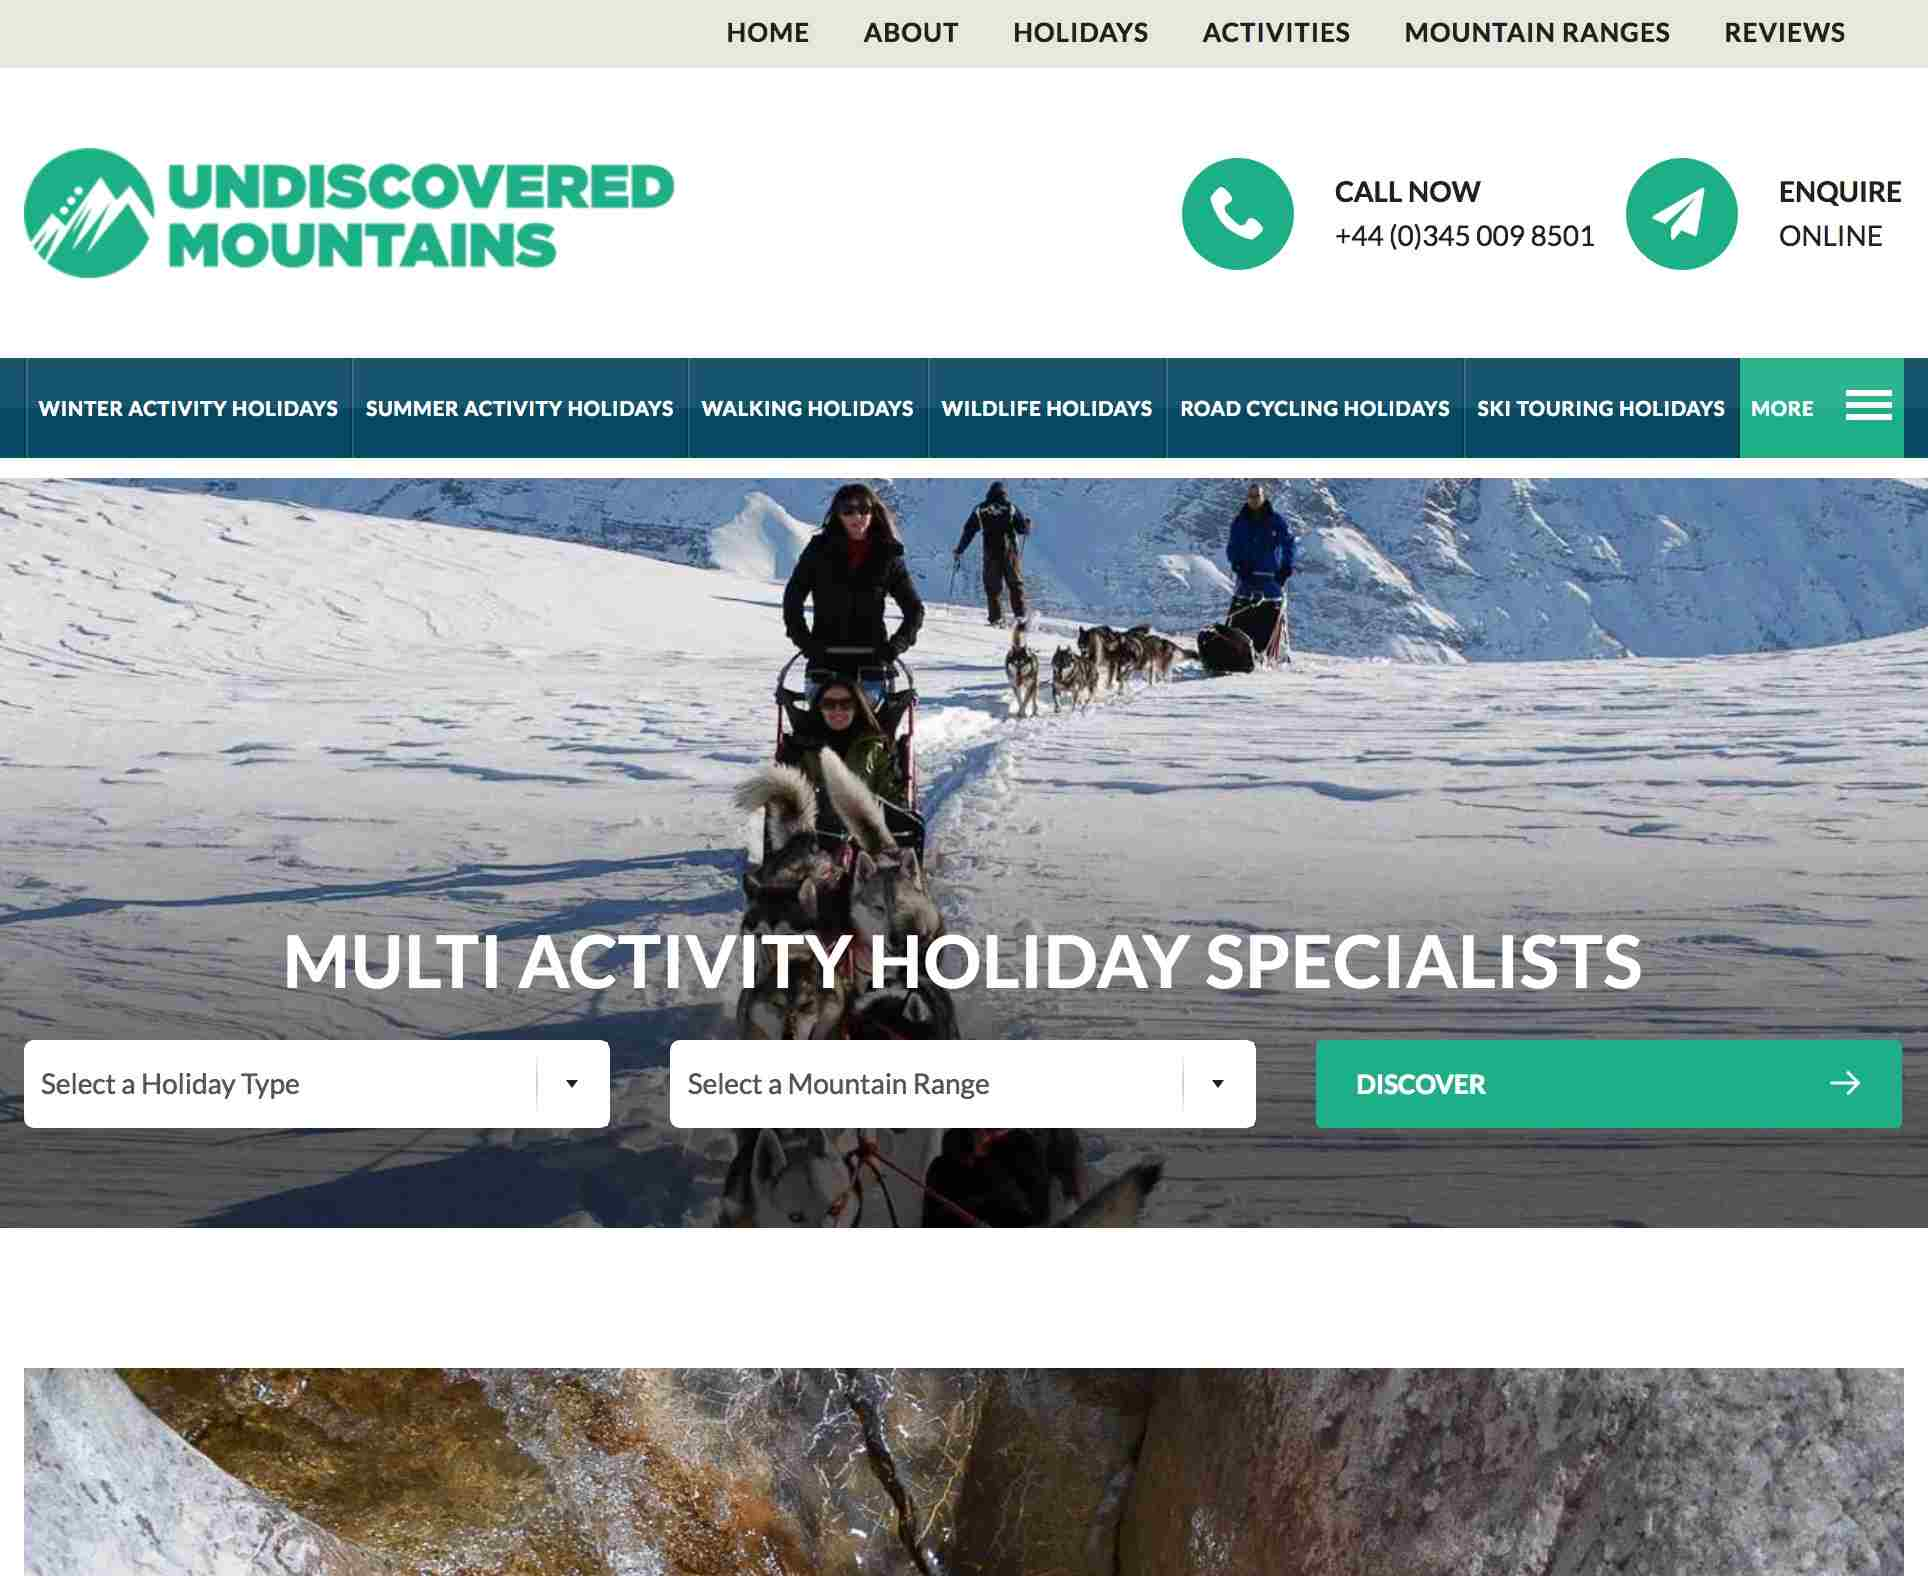 Undiscovered Mountains Case Study